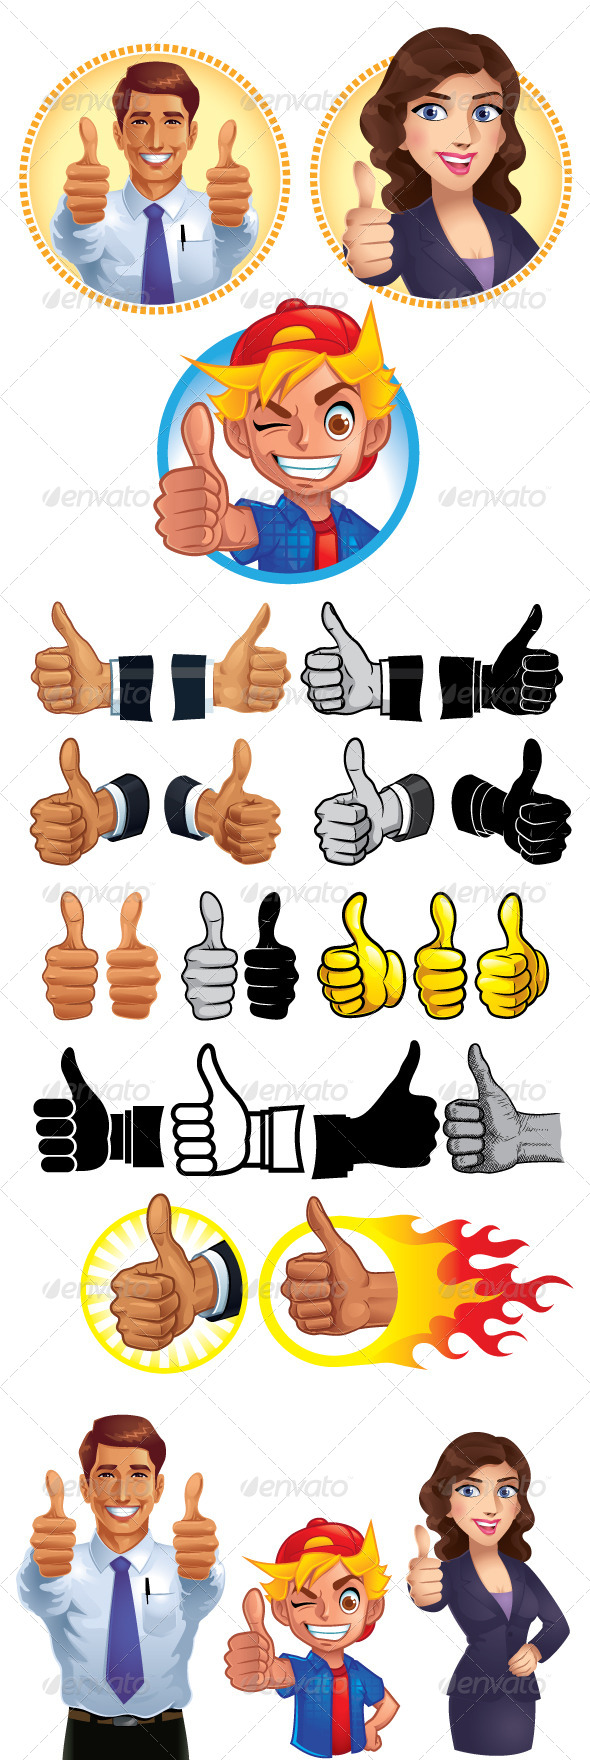 GraphicRiver Thumb Up Set 5978214